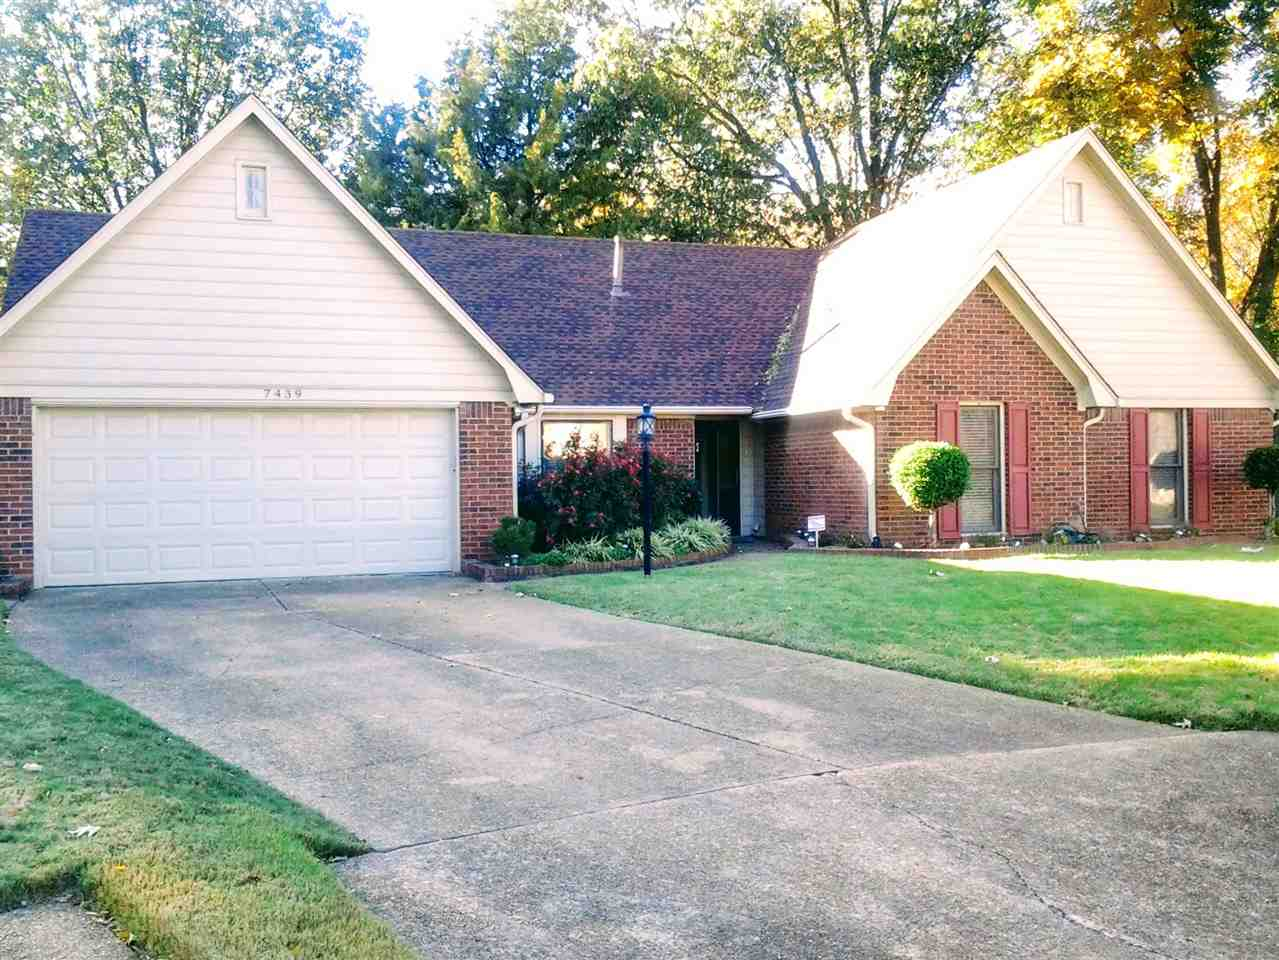 7439 Southwind, Unincorporated, TN 38125